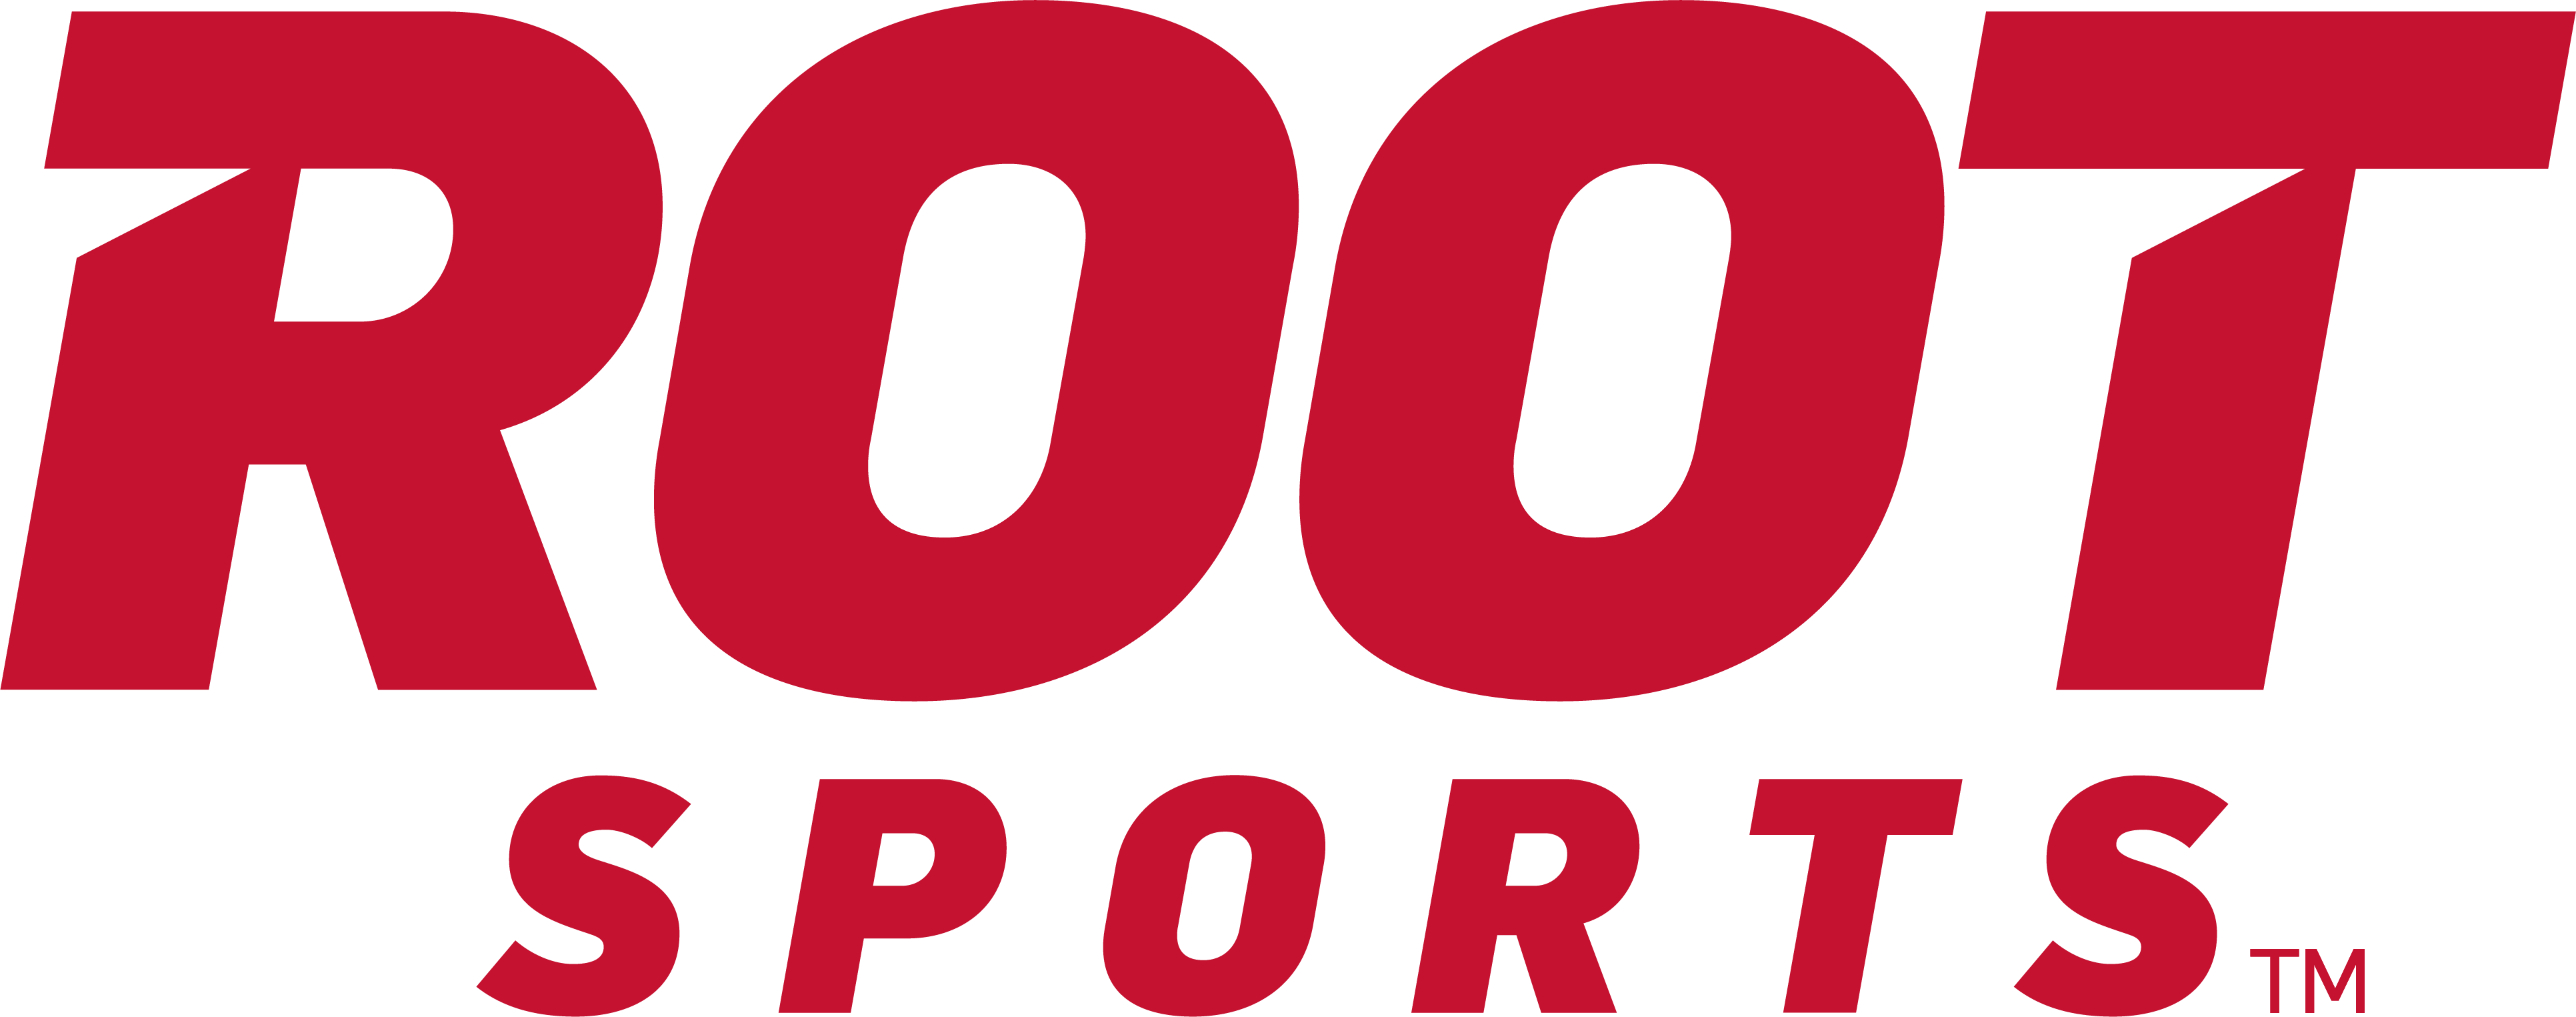 ROOT SPORTS ™ logo